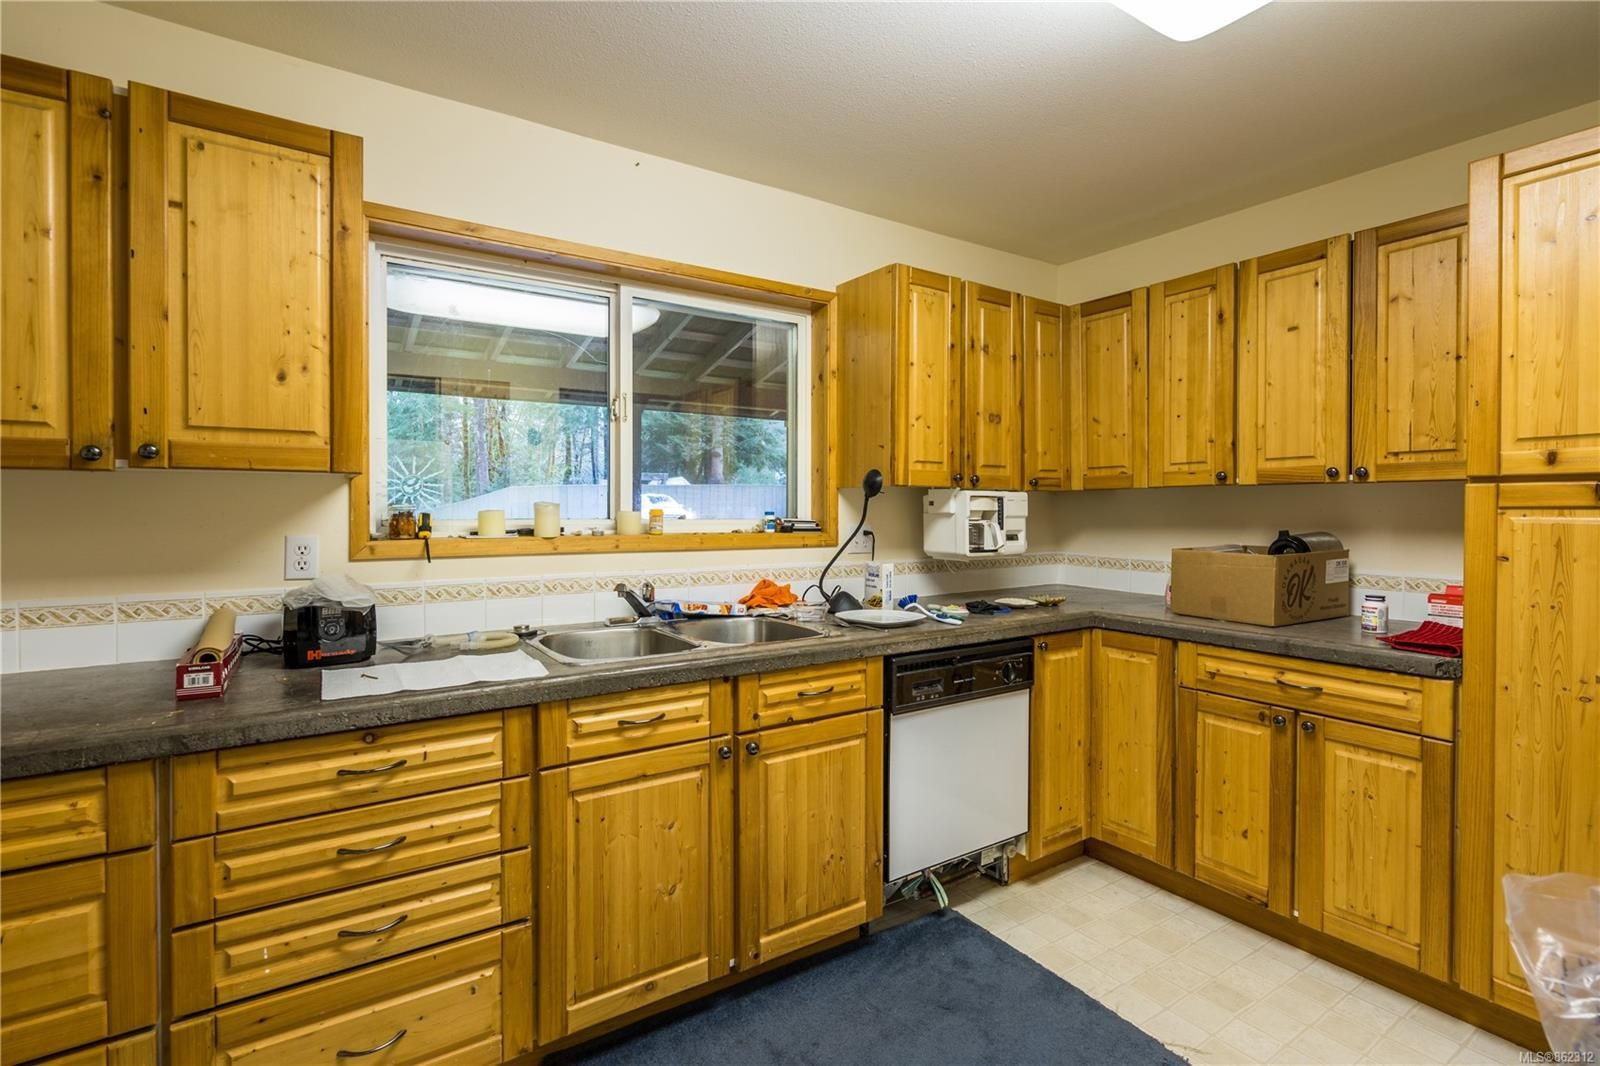 Photo 42: Photos: 7380 Plymouth Rd in : PA Alberni Valley House for sale (Port Alberni)  : MLS®# 862312